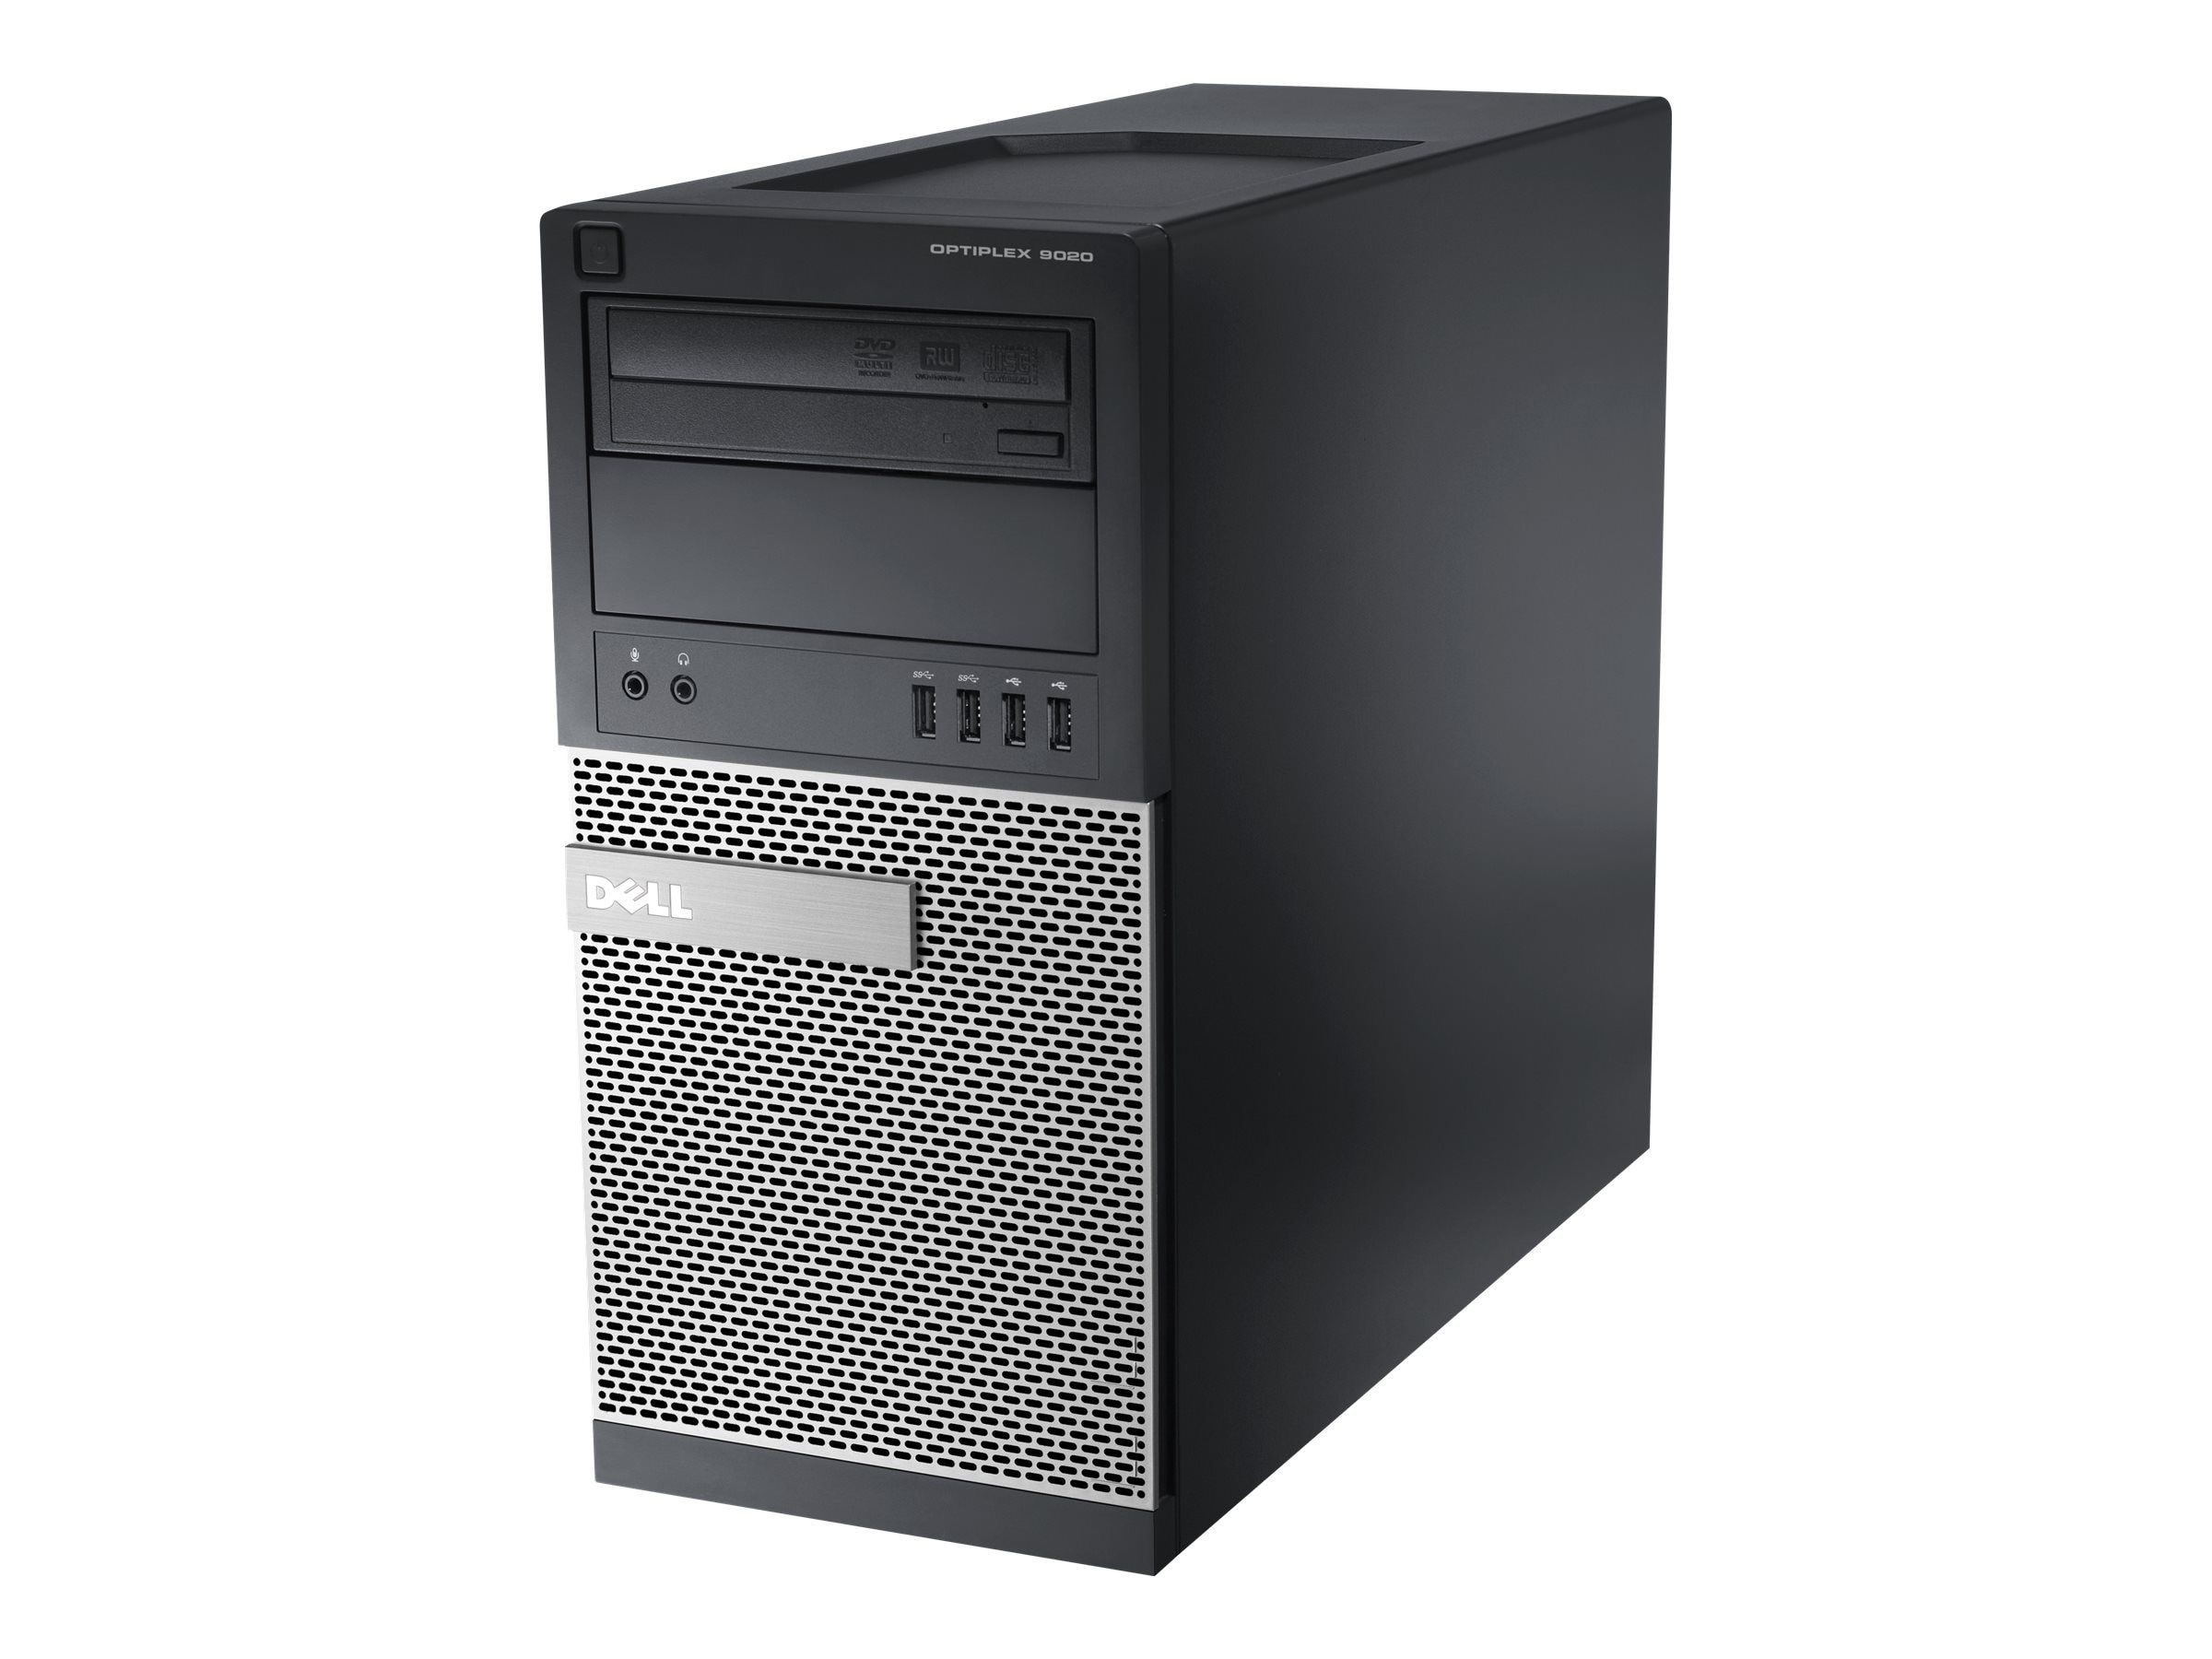 Dell Optiplex 9020 3.6GHz Core i7 8GB RAM 1TB hard drive, 7GMCP, 17946118, Desktops